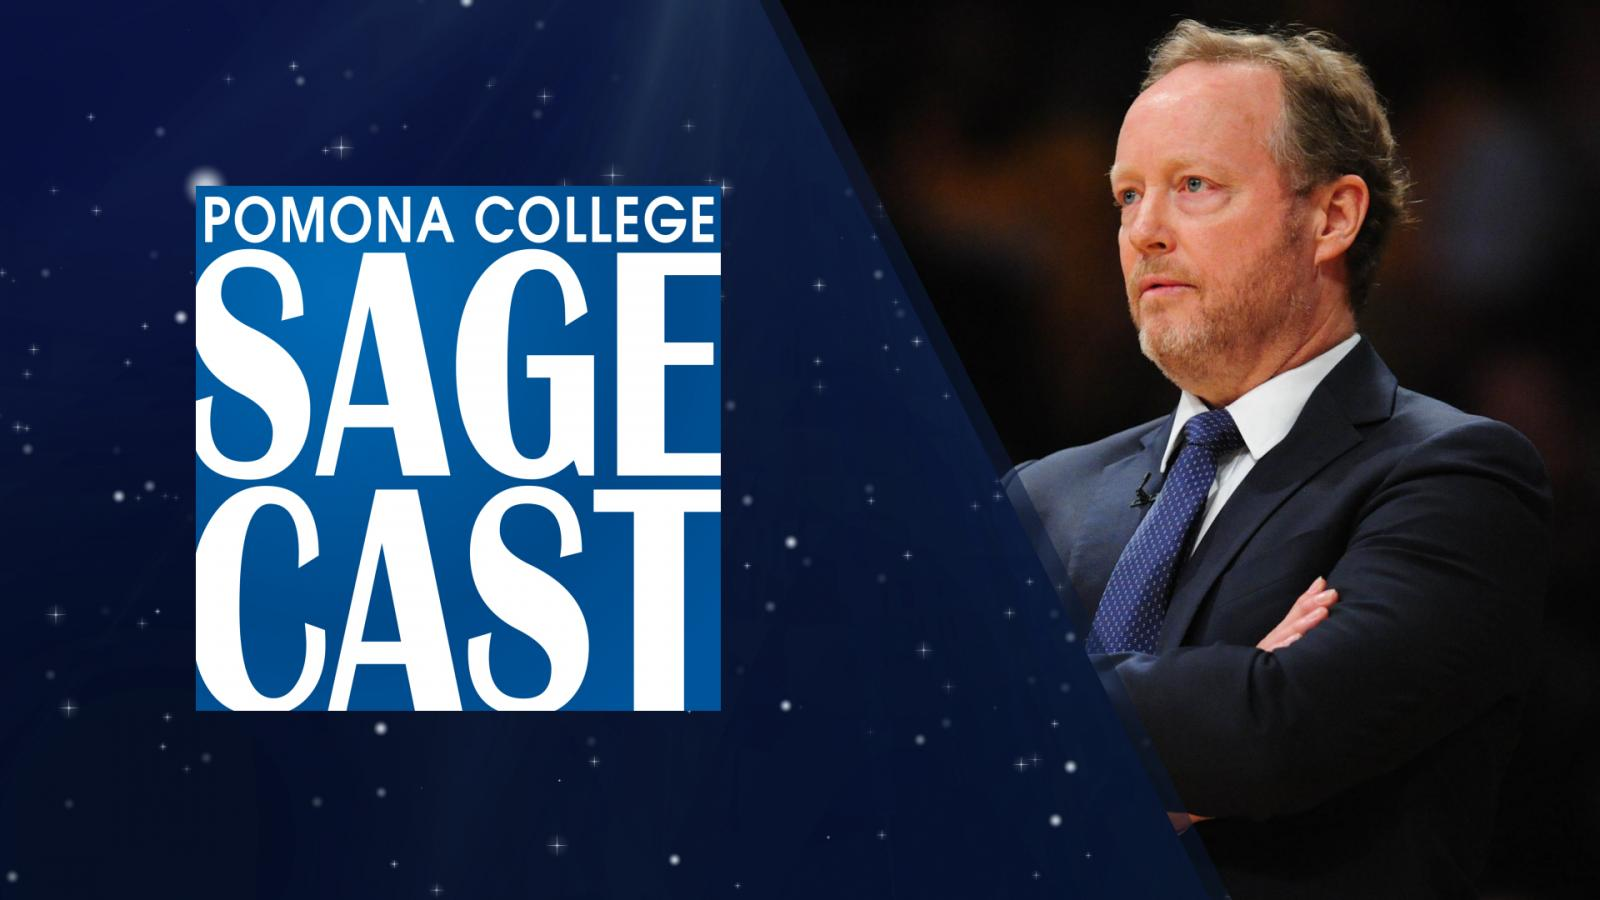 sagecast logo and a picture of Mike Budenholzer